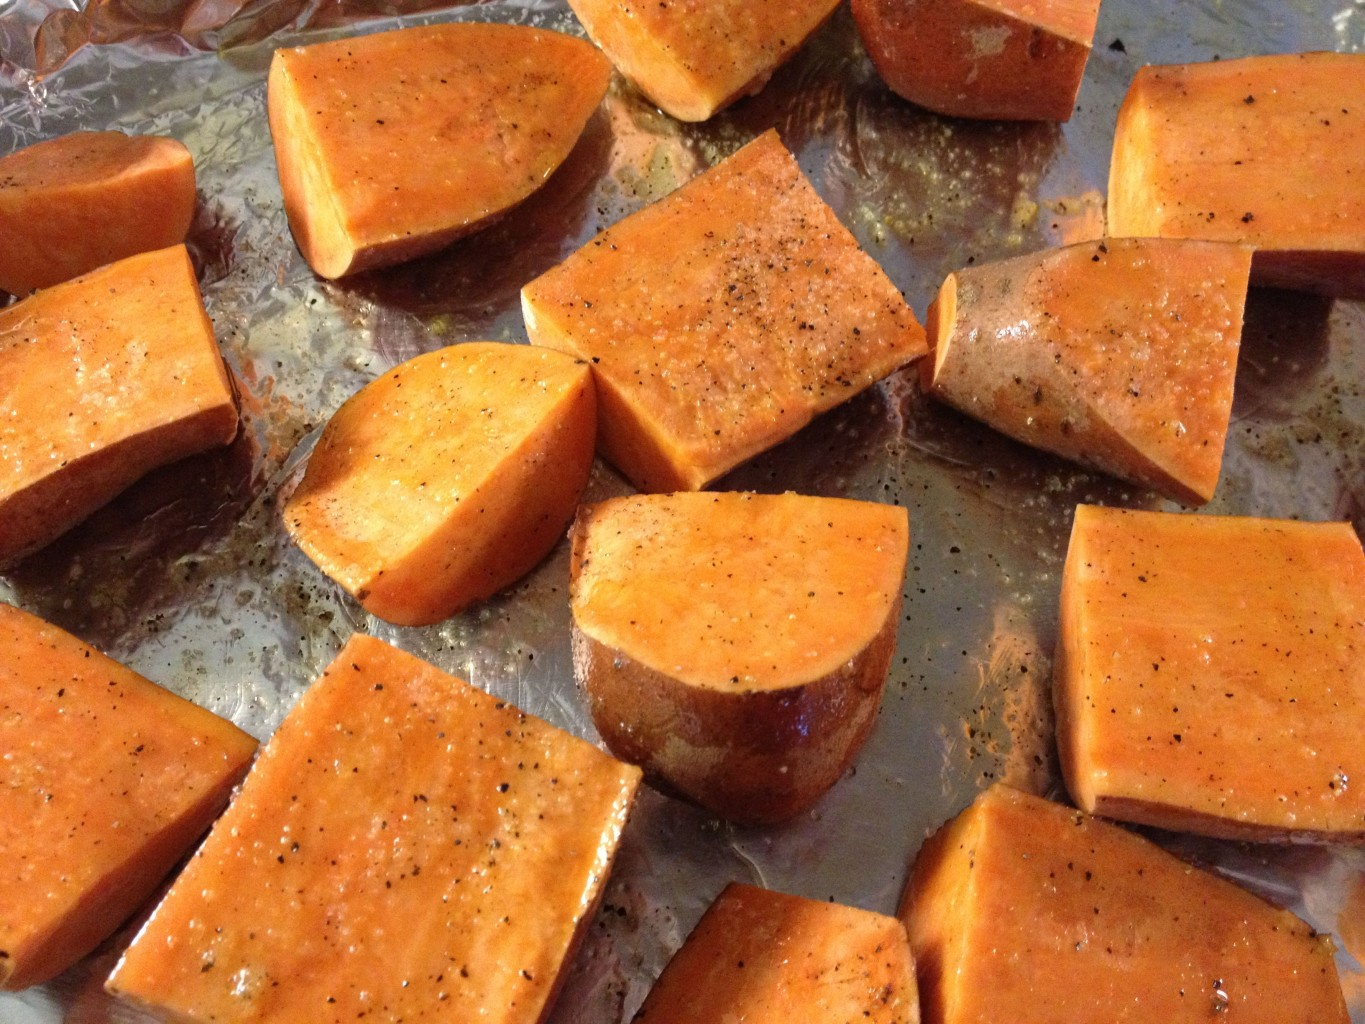 ticorangesweetpotatoes